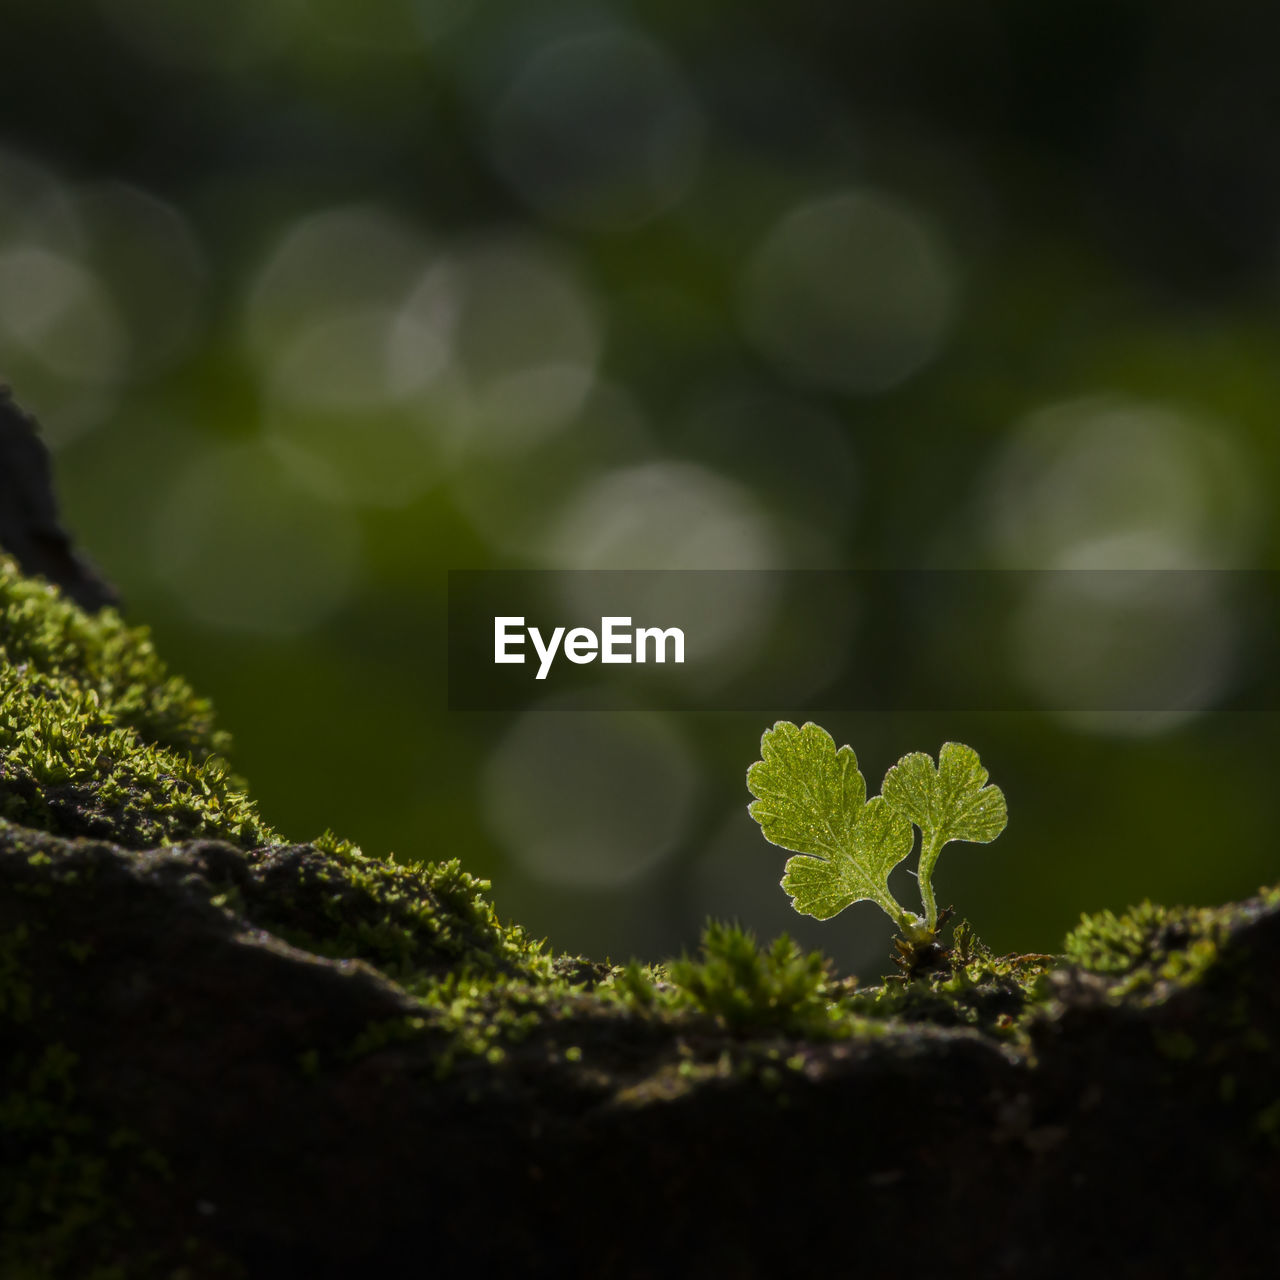 growth, plant, green color, selective focus, nature, beauty in nature, close-up, leaf, plant part, no people, day, outdoors, freshness, field, land, tranquility, moss, beginnings, focus on foreground, food